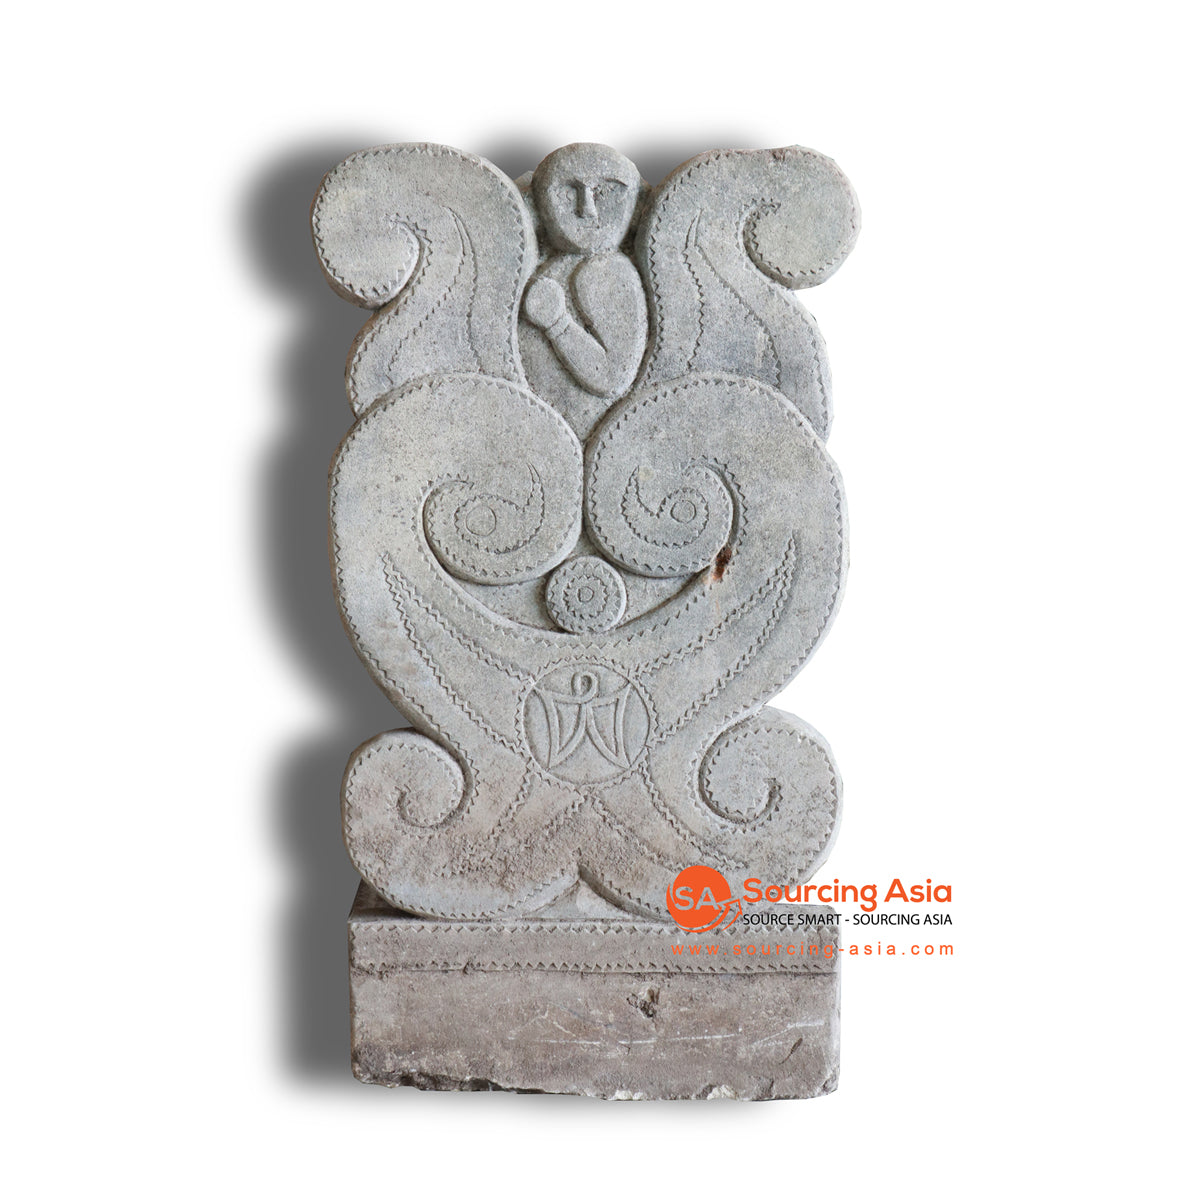 NUG003 ETHNIC CARVED STATUE DECORATION